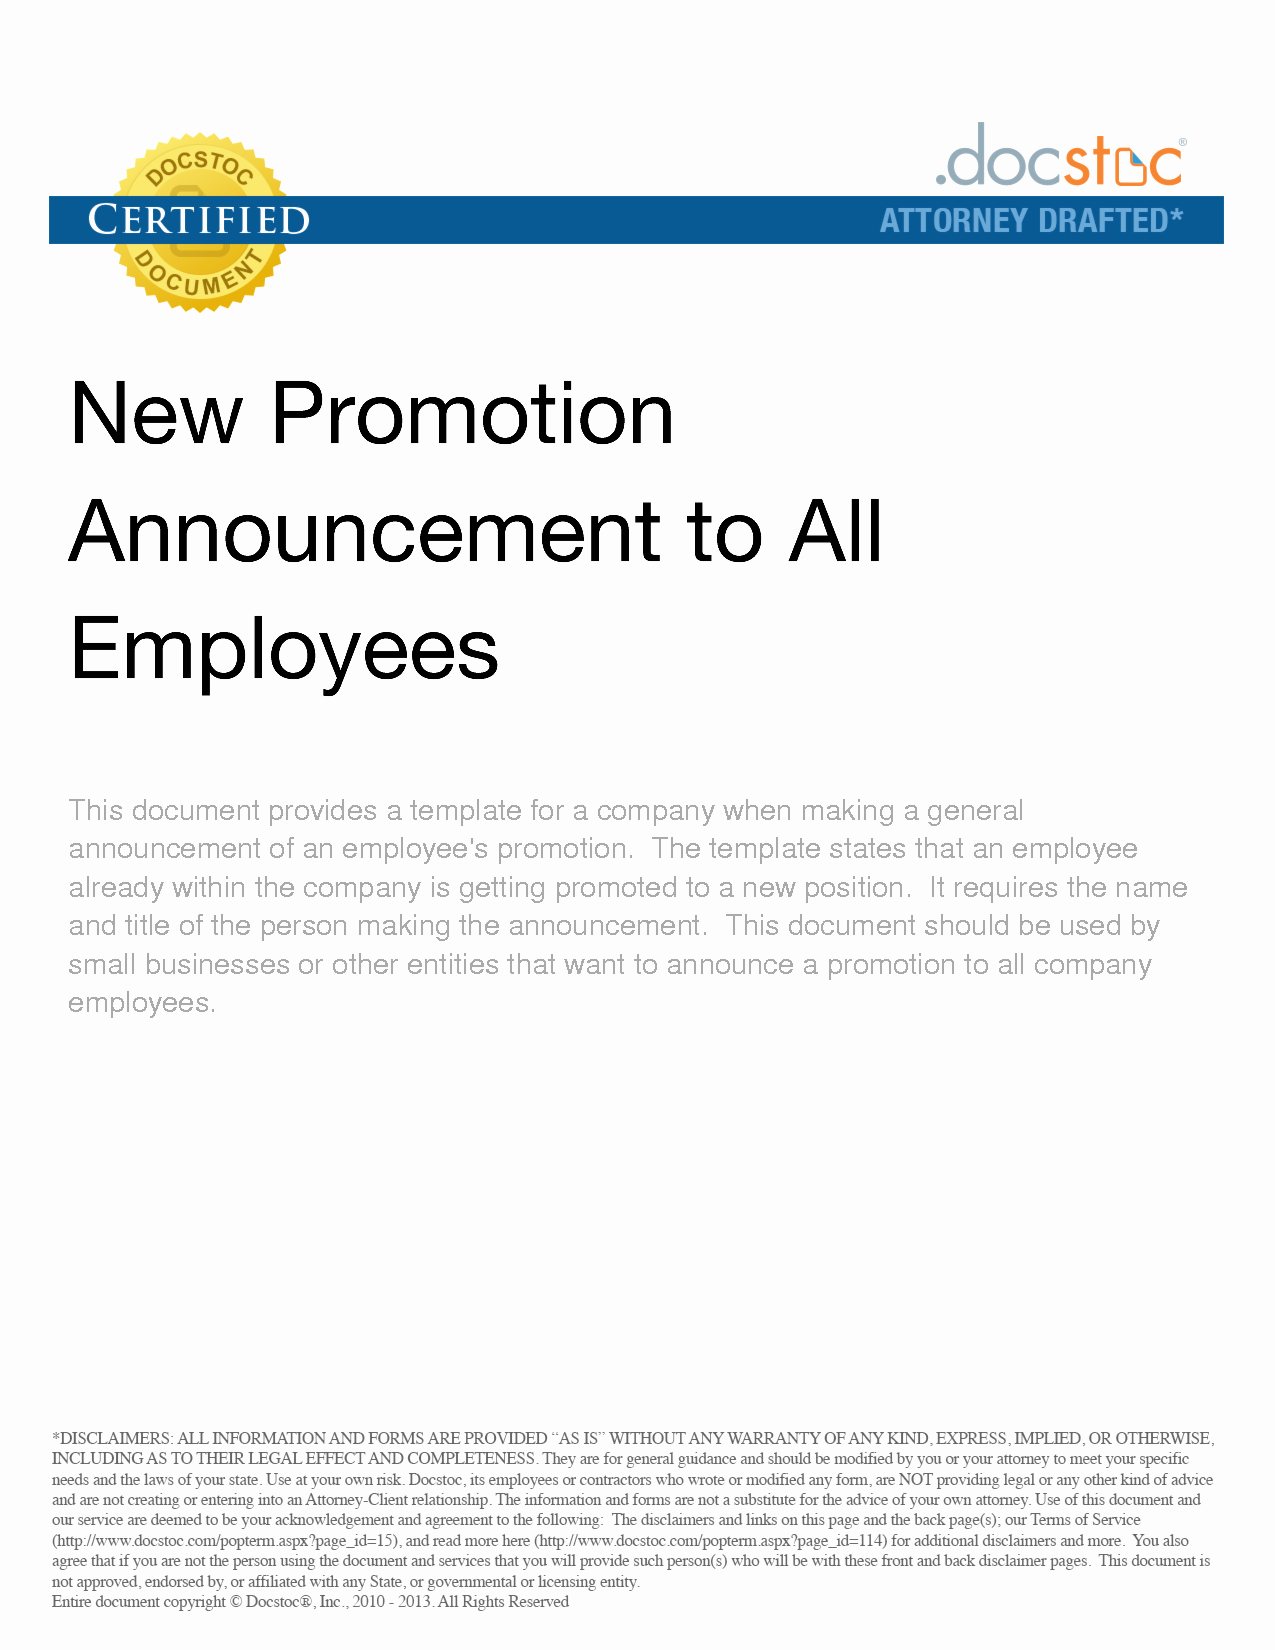 Promotion Announcement Template Elegant How to Announce A Promotion